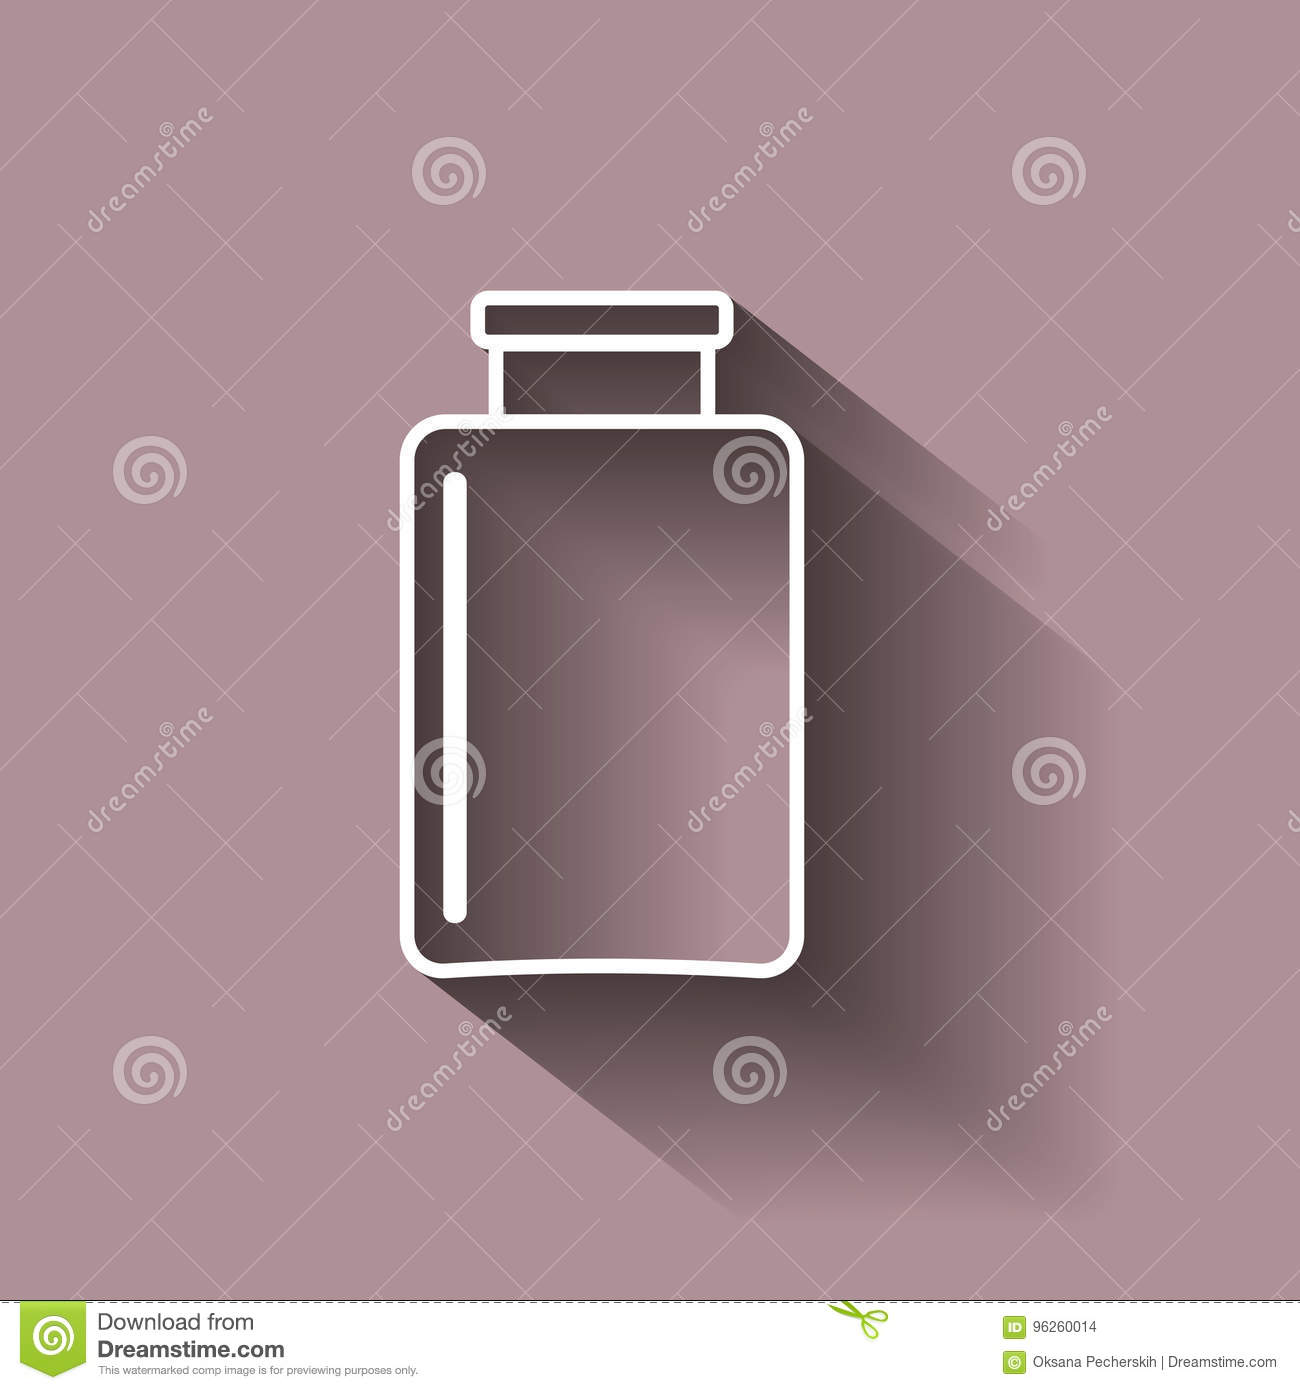 Vector Image Glass Jar Icons, Beakers  Illustration With Shadow